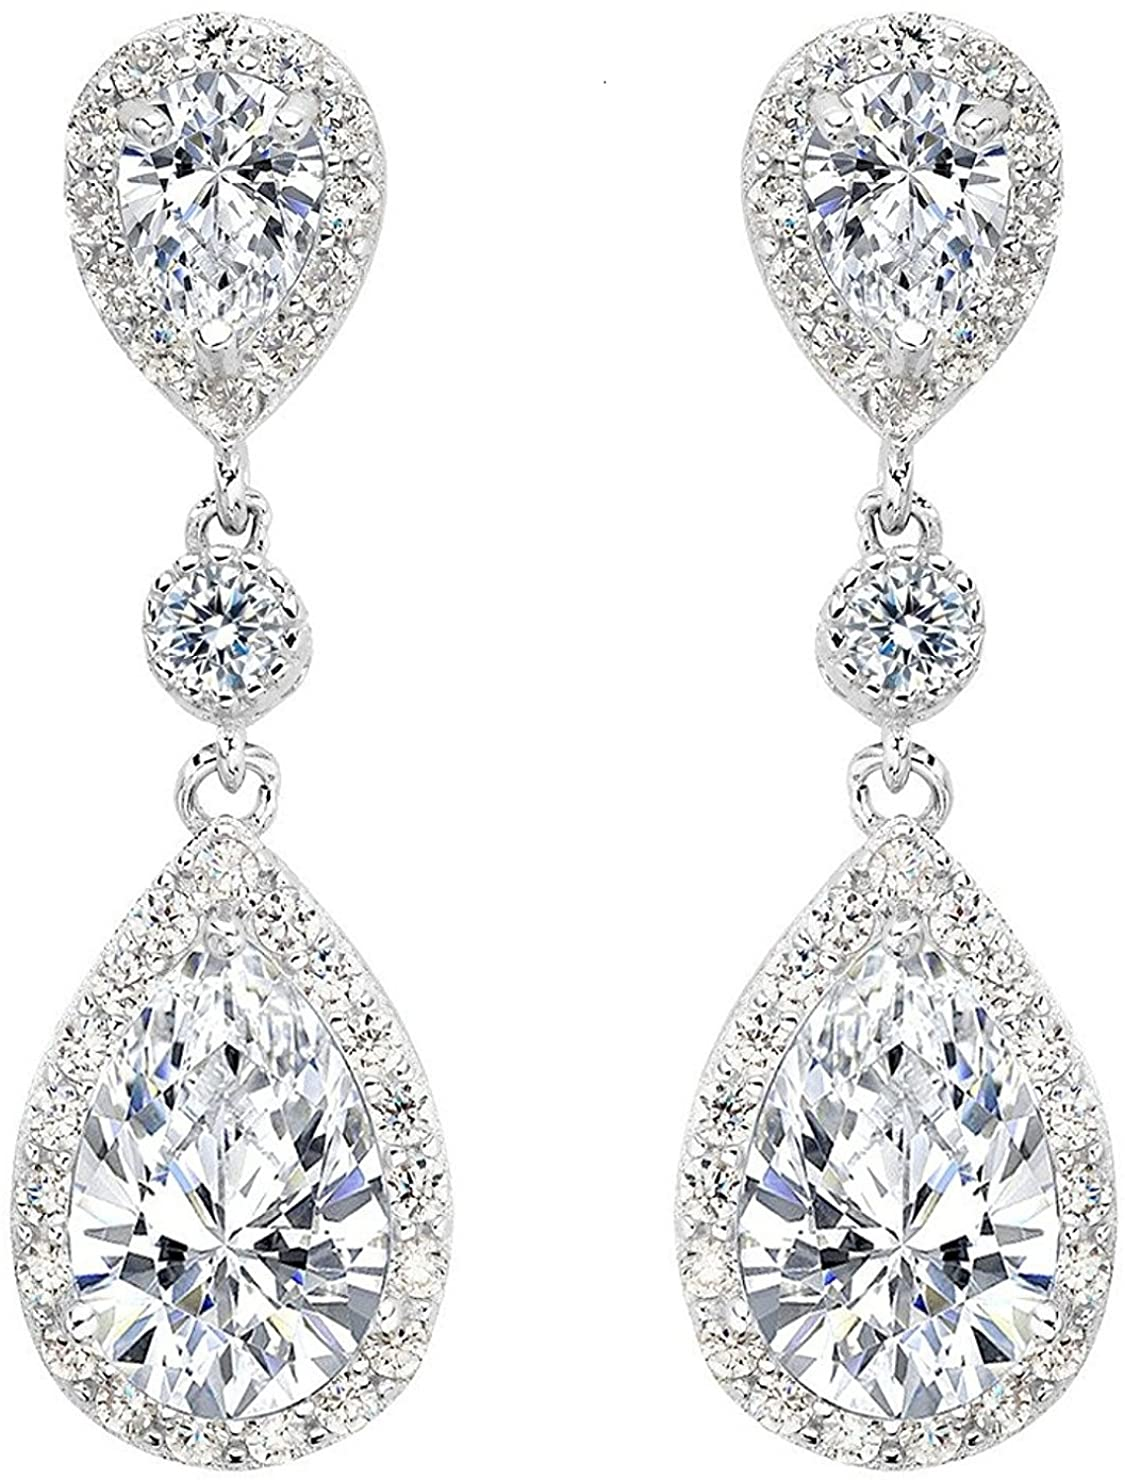 Yangle0520 Sterling Silver Drop Earrings,Sparkly Teardrop Chandelier Earrings, Exquisite Workmanship, Fashion Stylish Elegant Design, Wedding and Party Jewelry